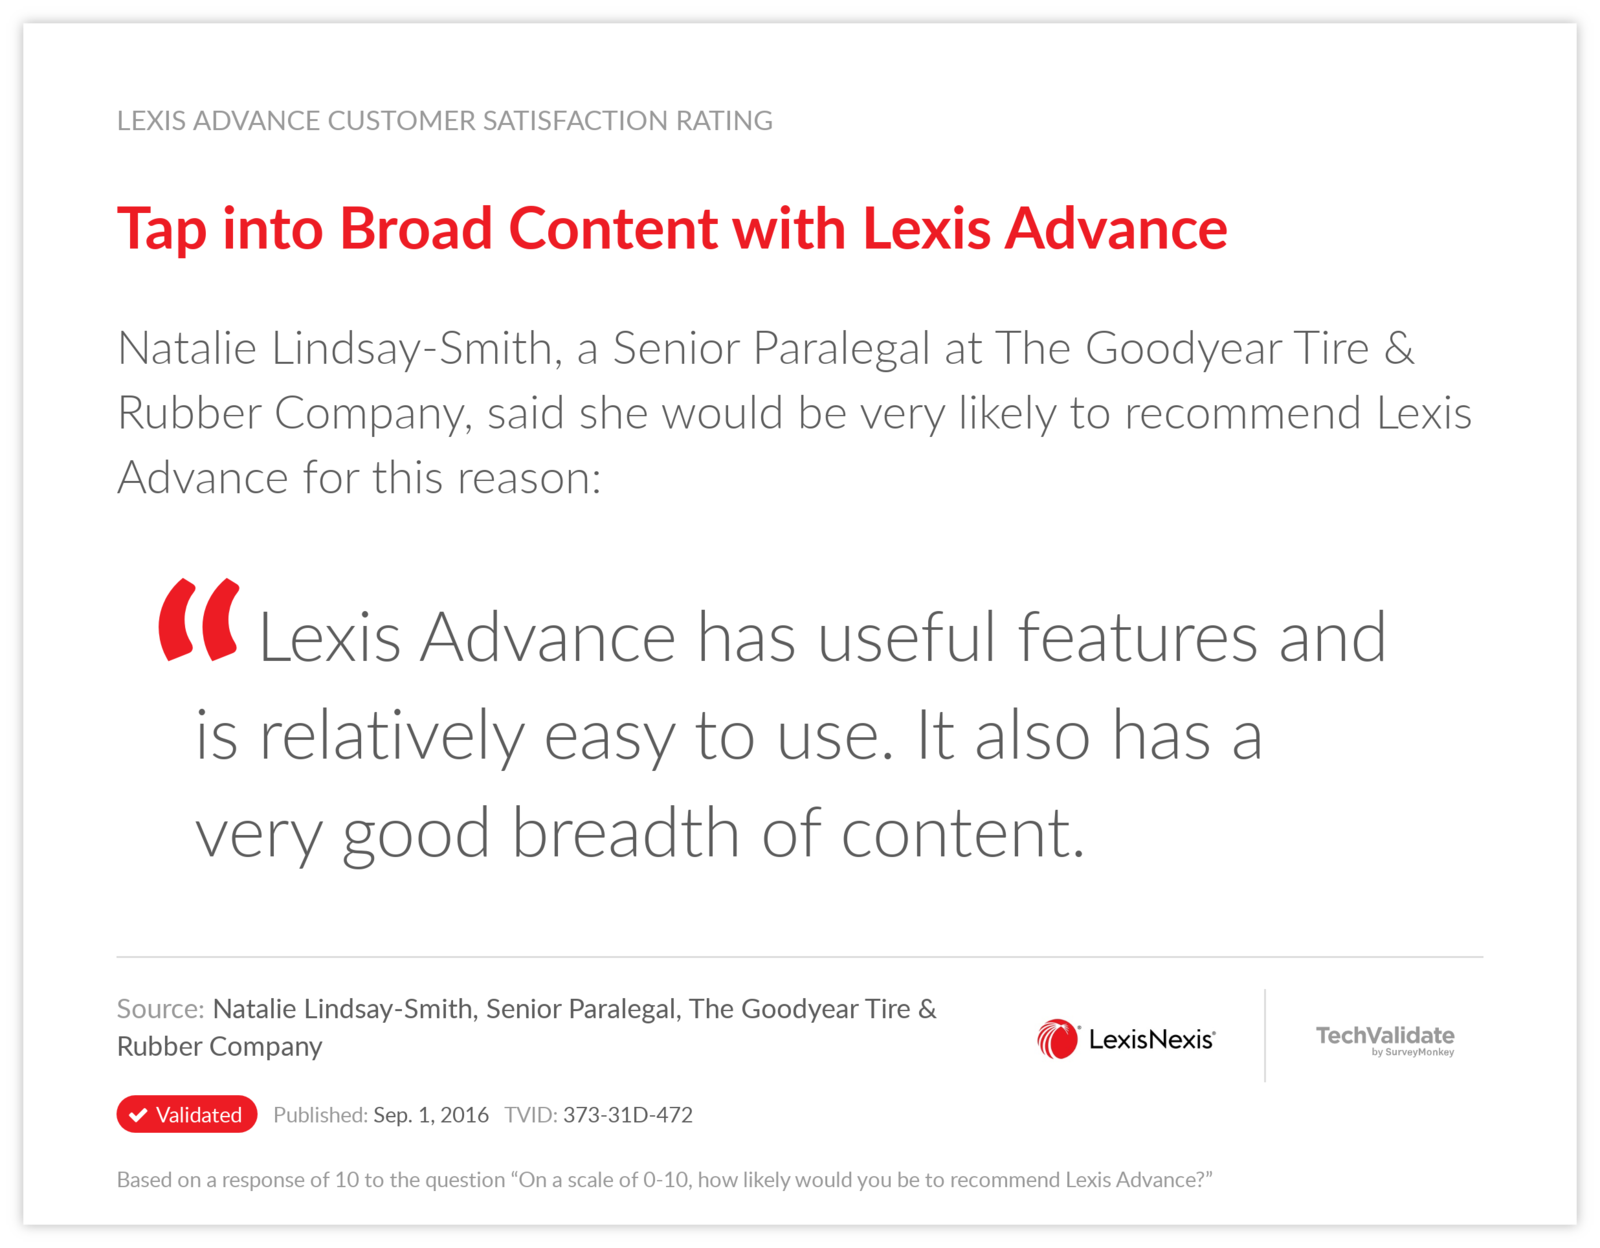 Tap into Broad Content with Lexis Advance